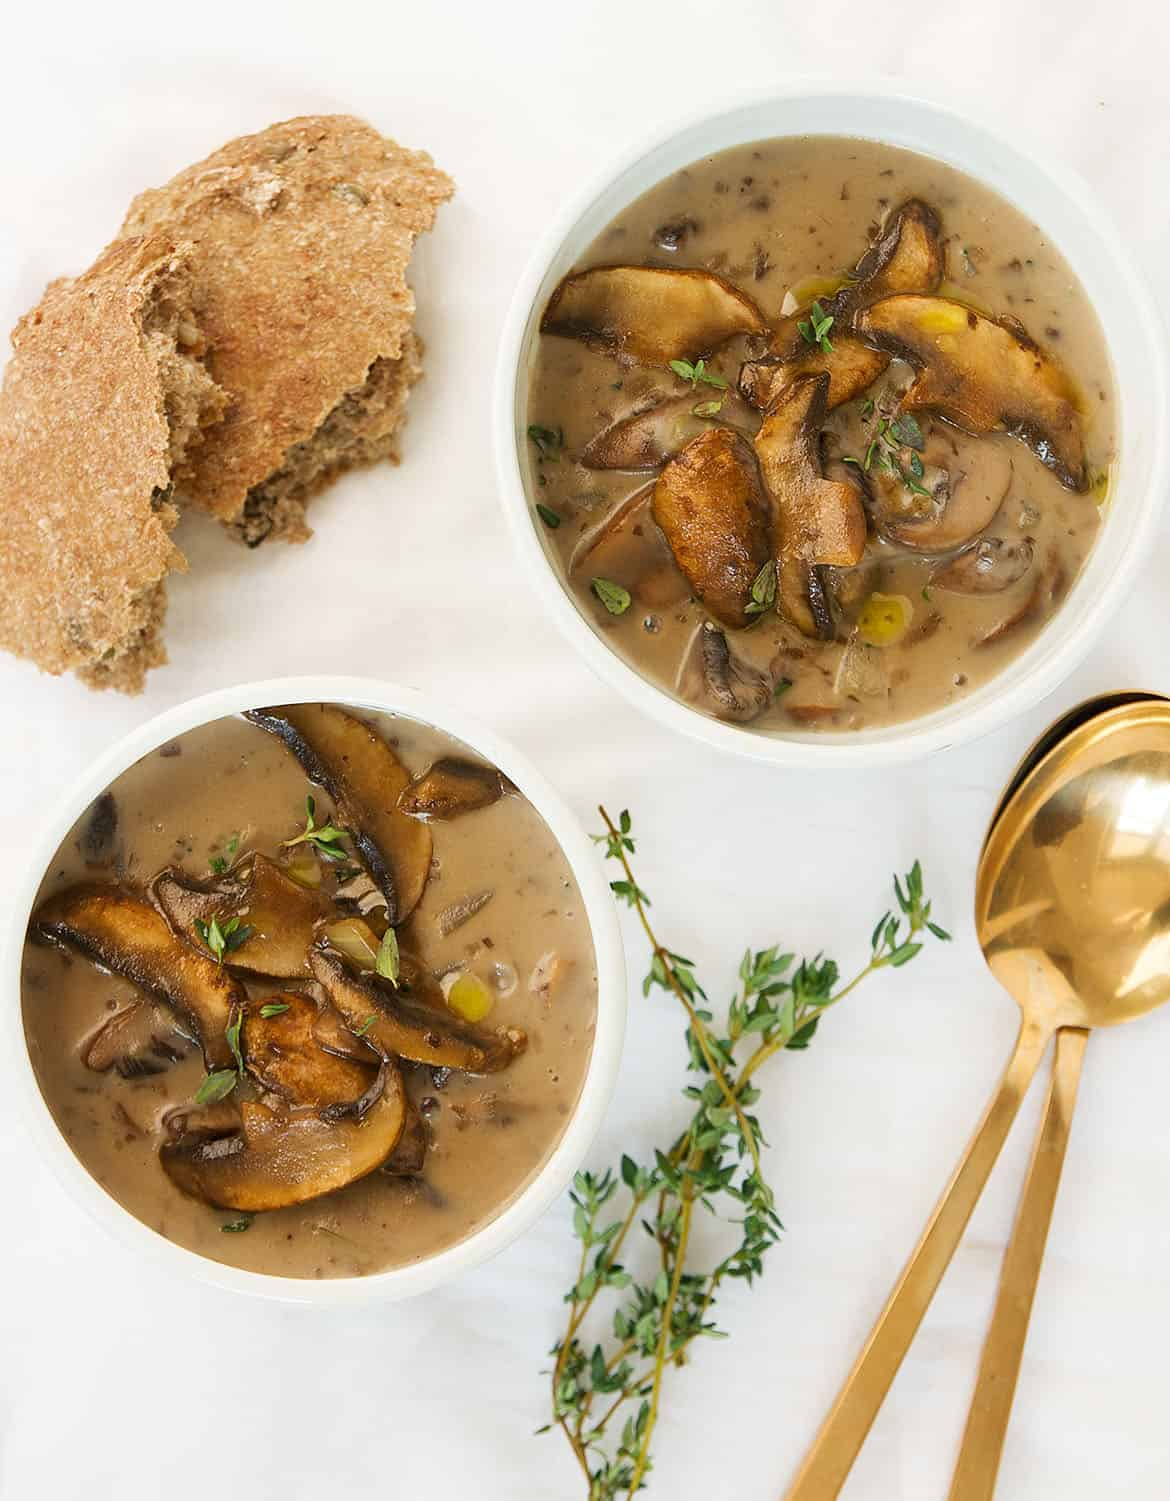 Top view of two bowls of mushroom soup over a white background.